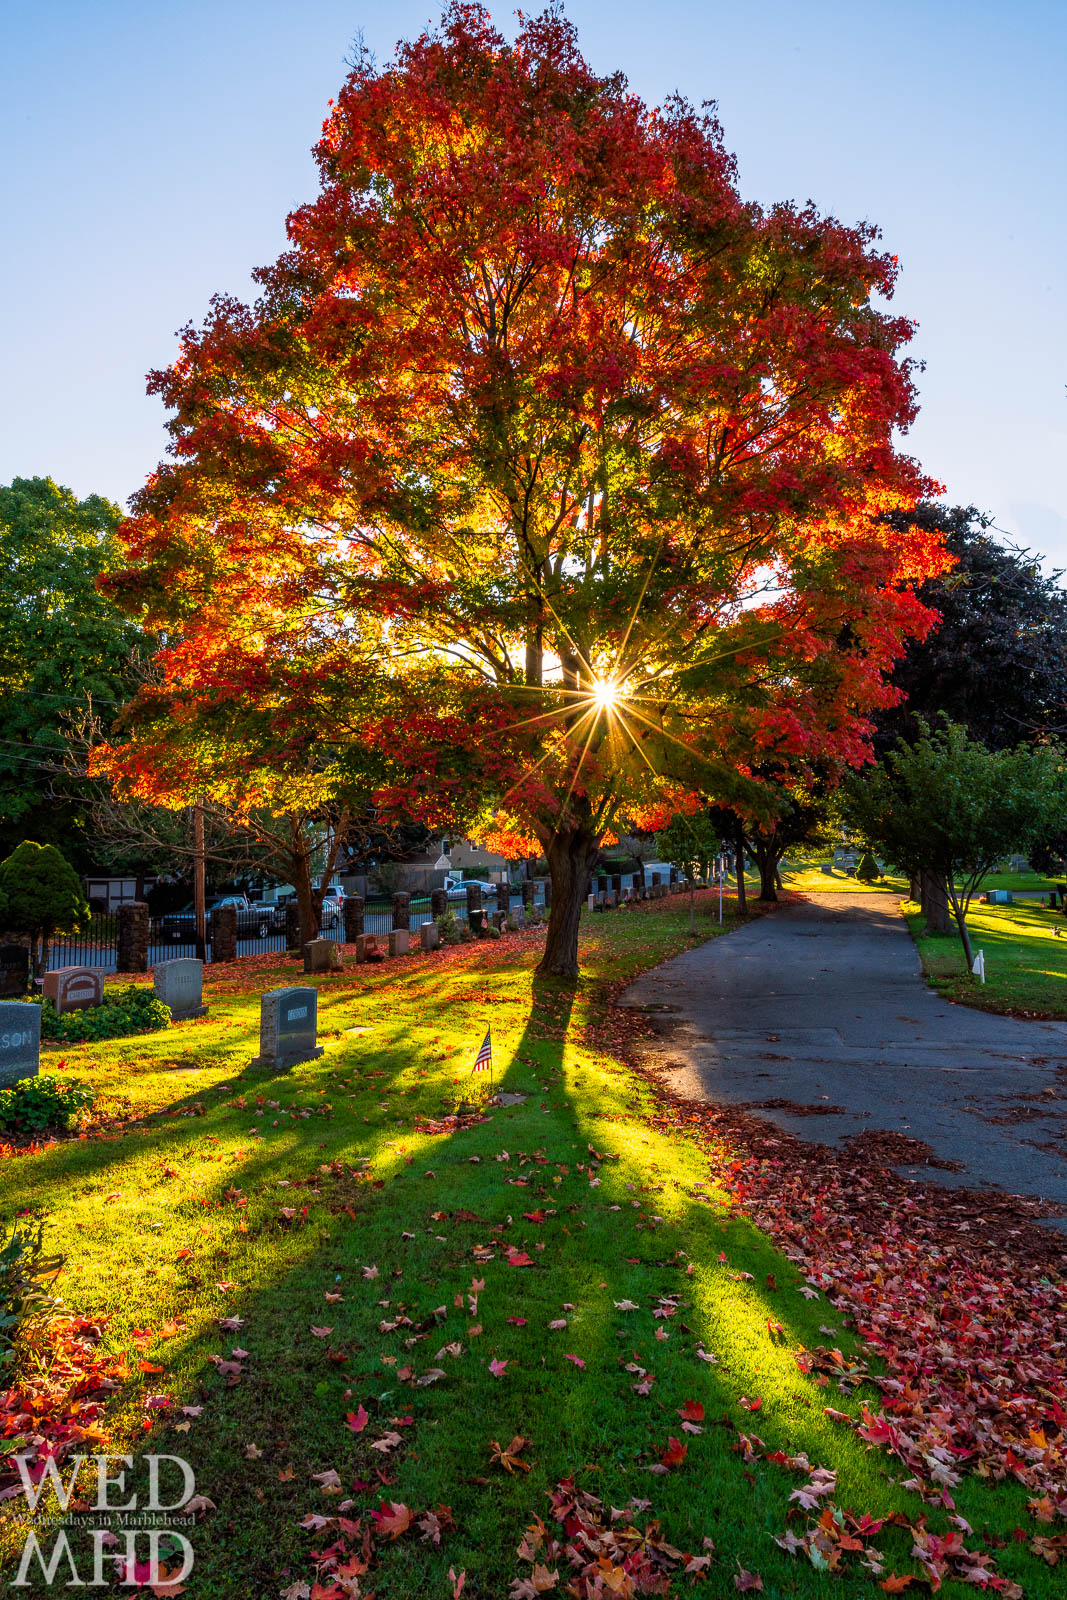 The morning sign rises behind a tree displaying peak foliage at Waterside Cemetery on a mid-october day. The sun backlights the leaves to help illuminate their varying colors